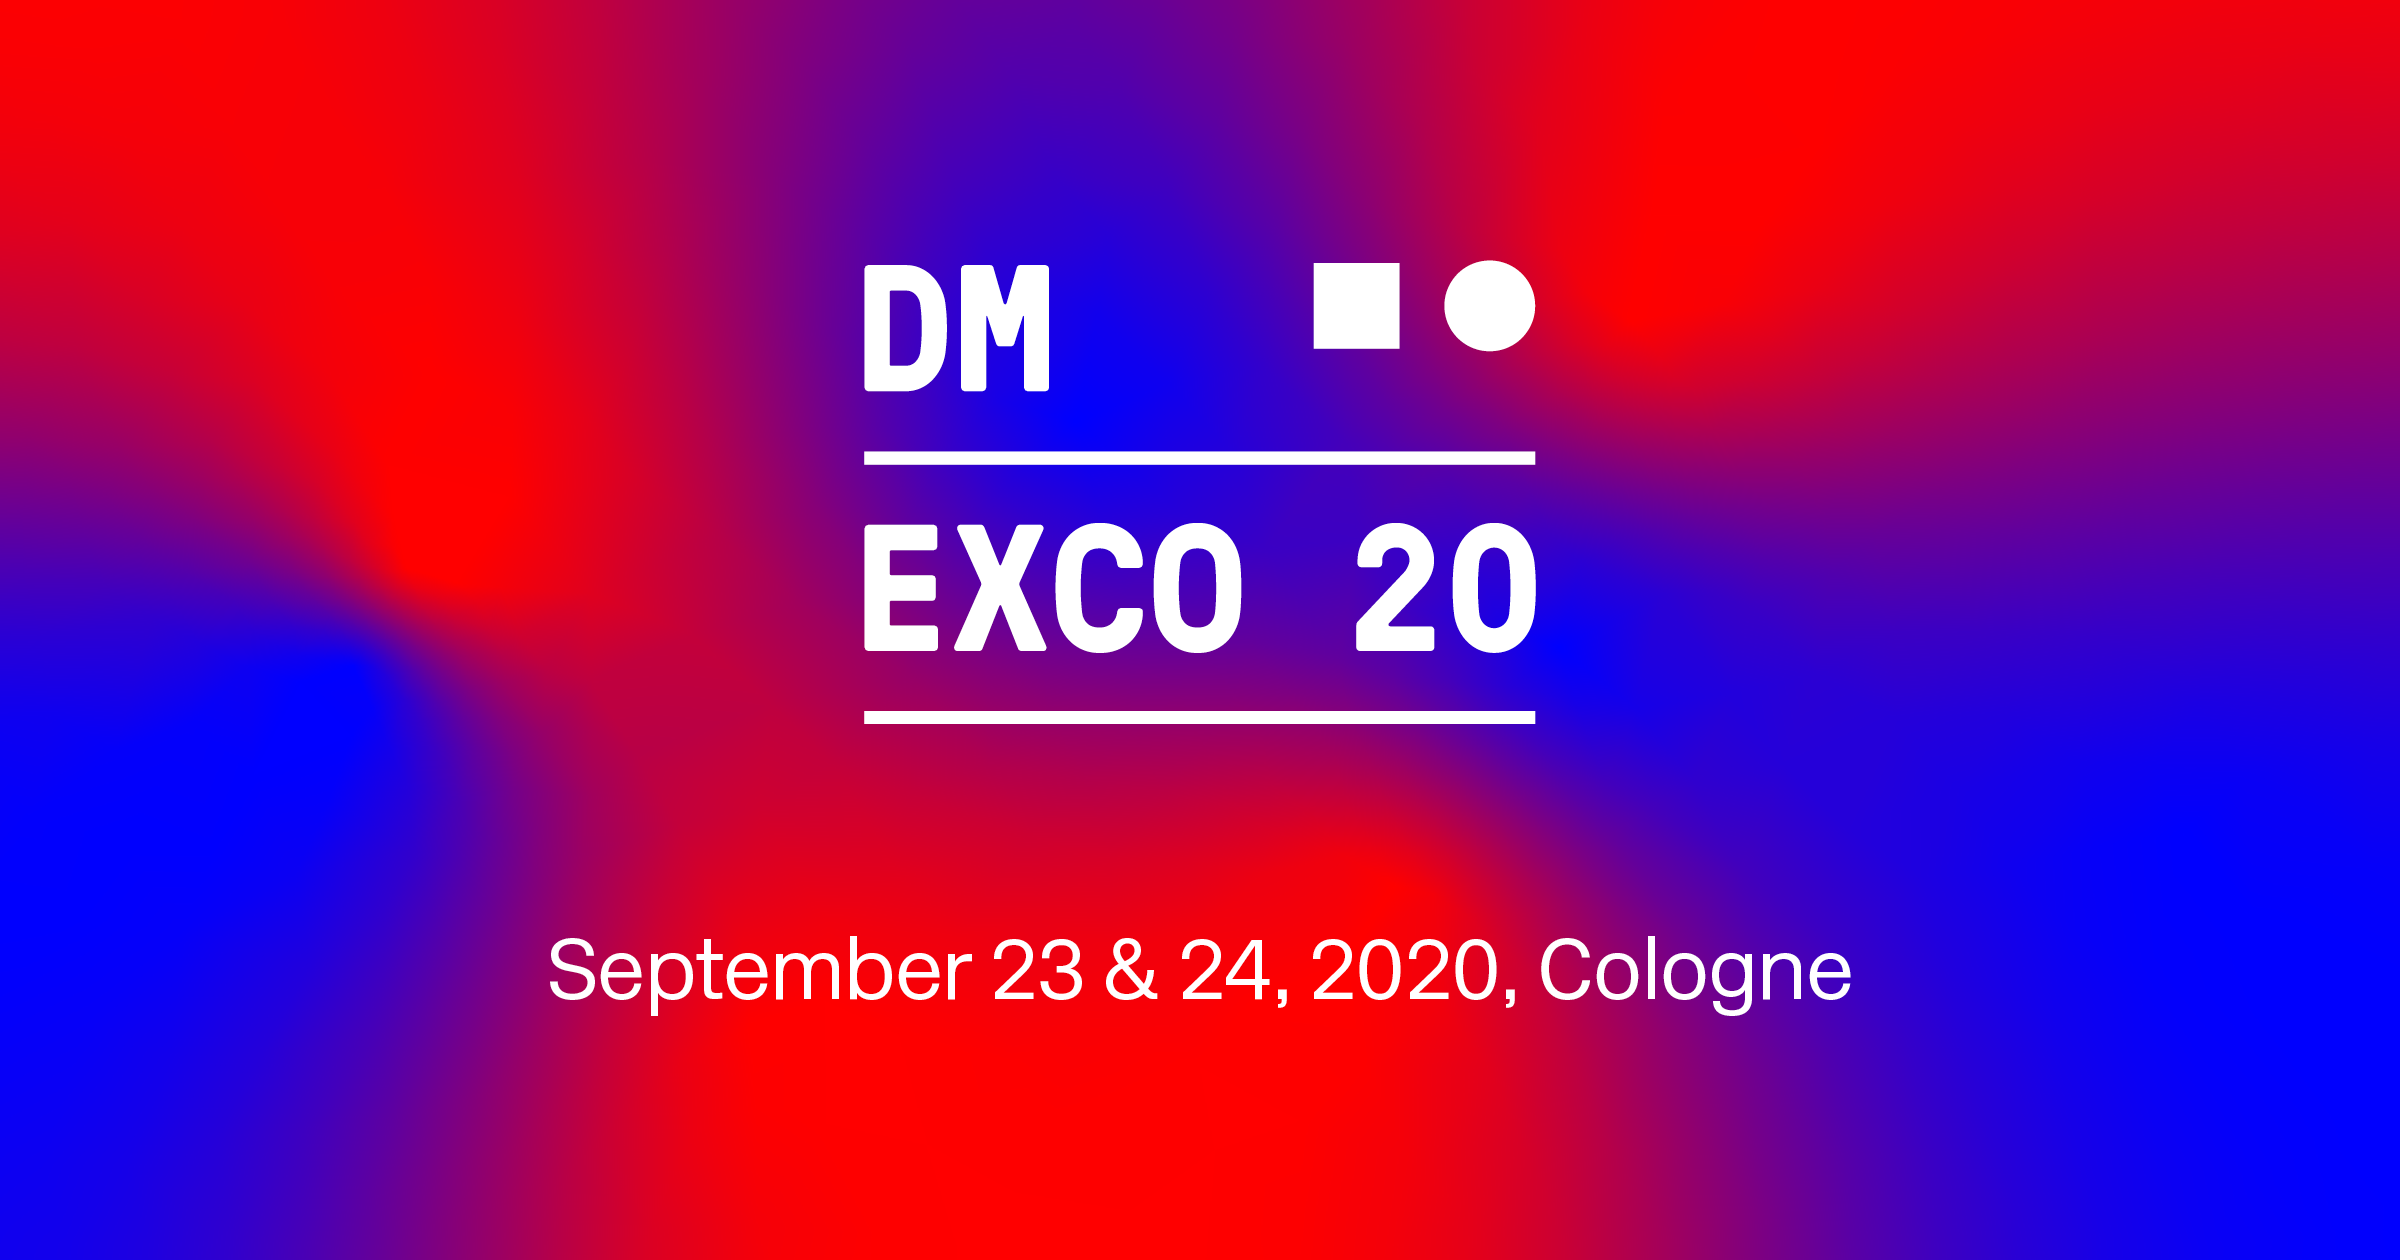 Matchmaking dmexco